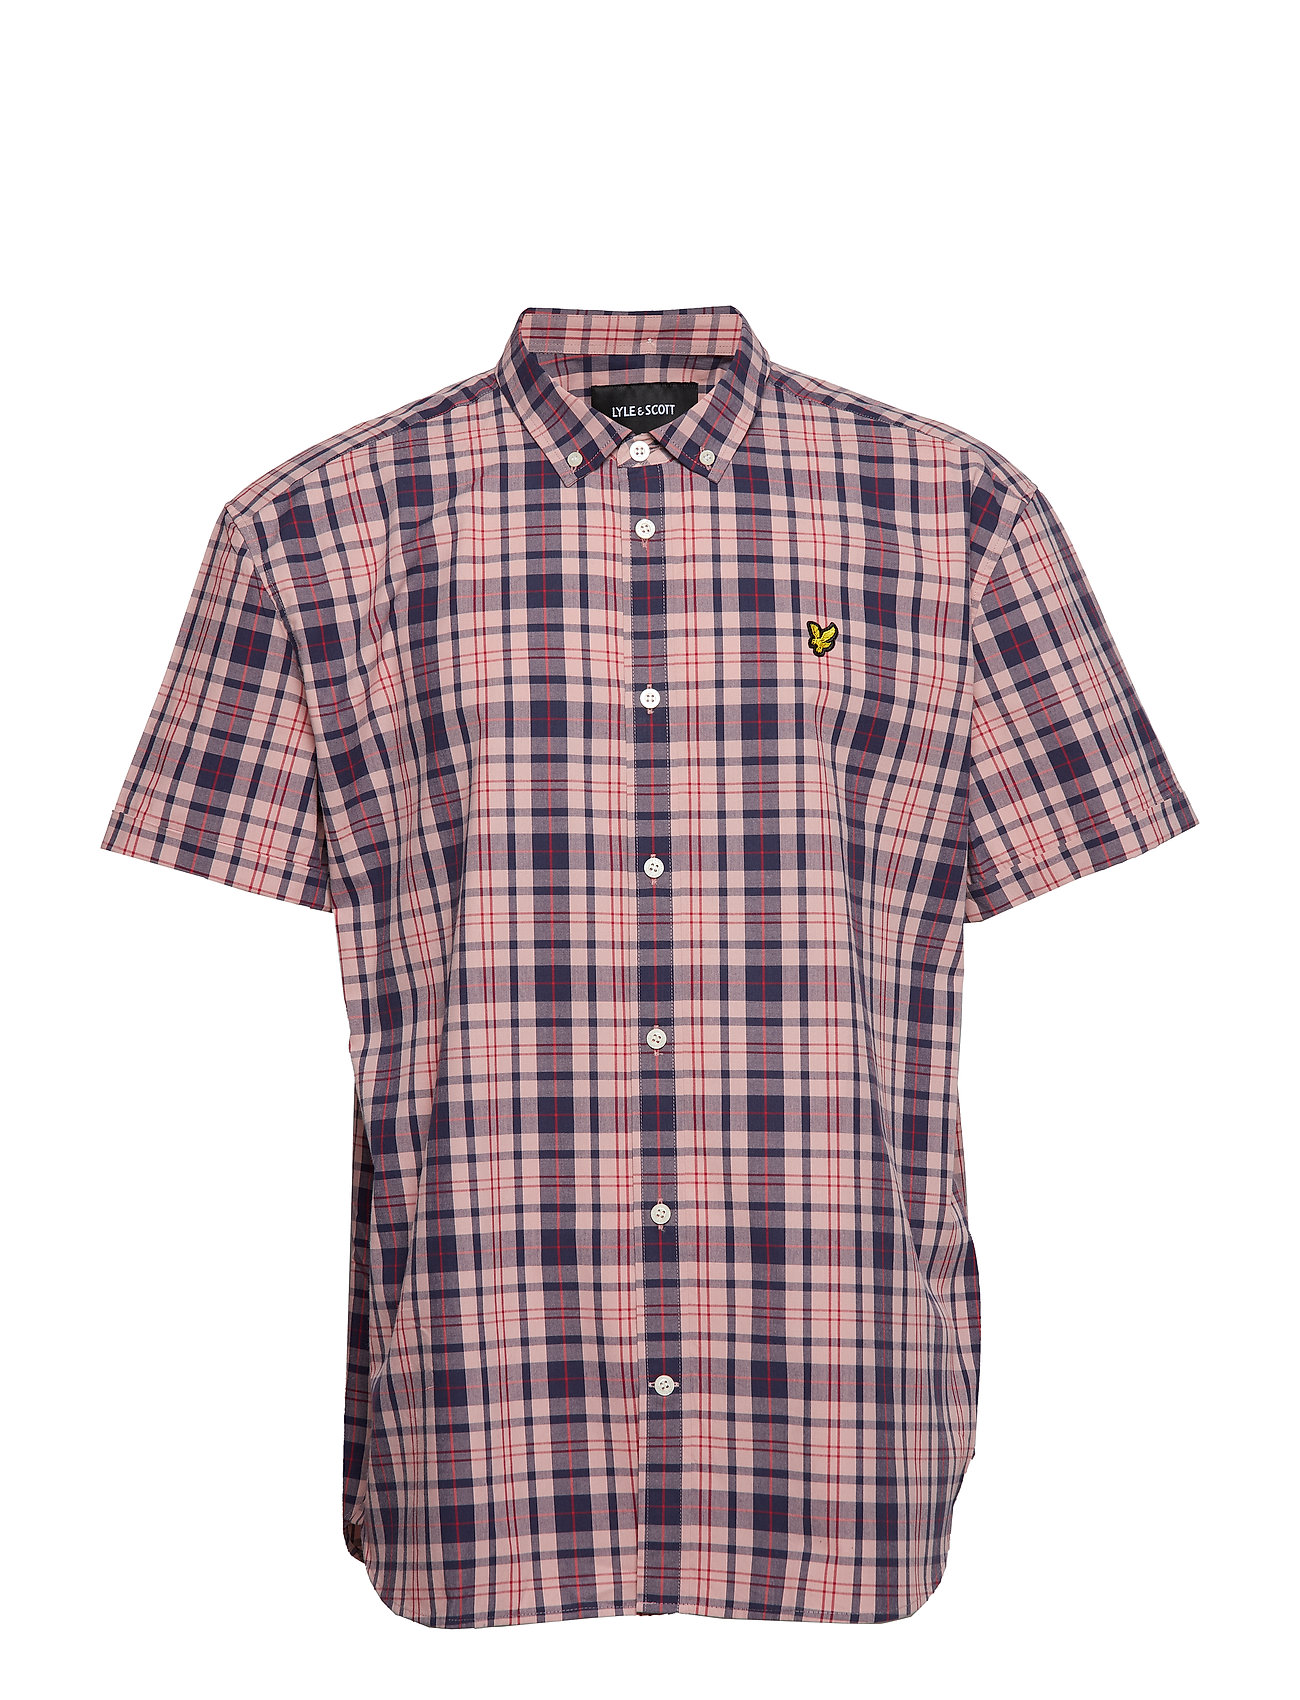 Lyle & Scott SS Check Shirt - CORAL WAY